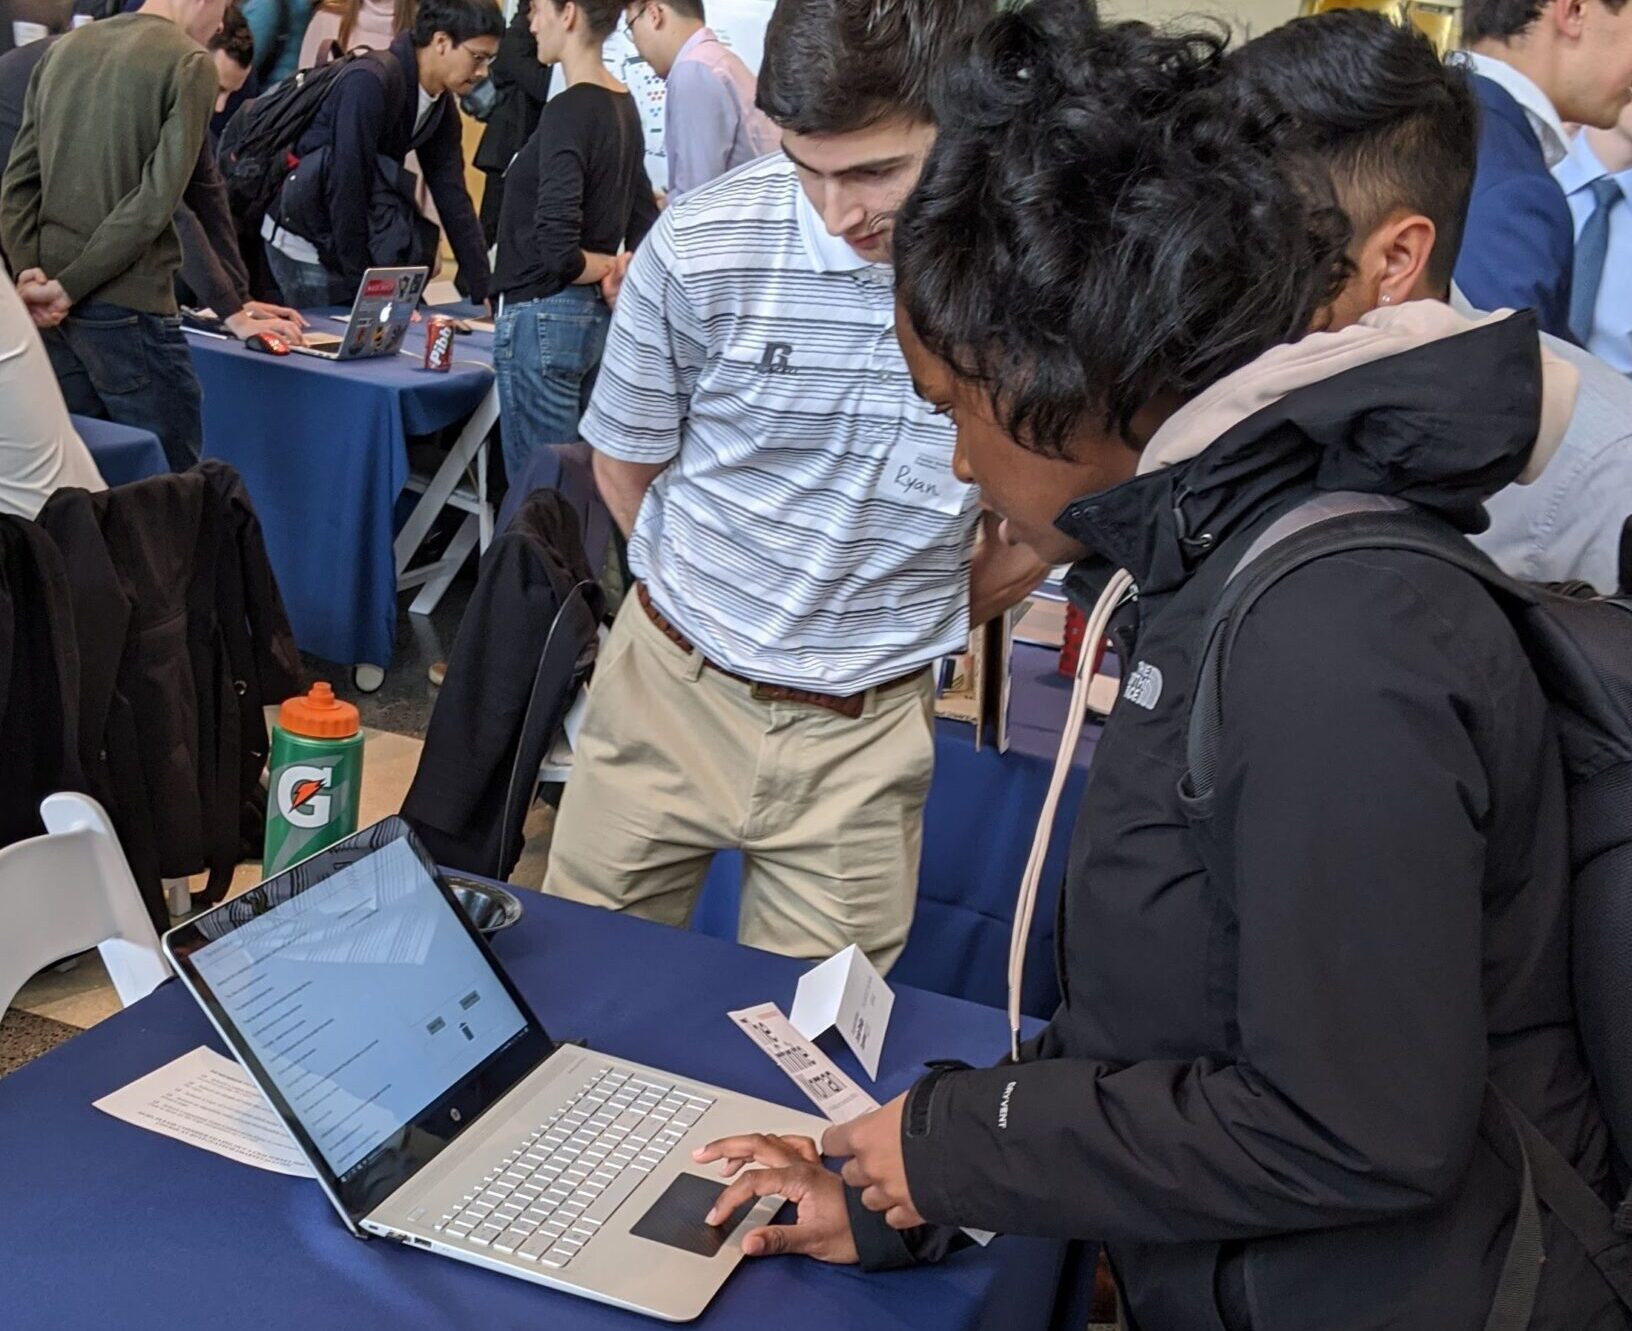 The team presents their project at Georgia Tech's Junior Design Capstone Expo in December 2019. A visitor interacts with a laptop displaying the project, making an erasure poem while team members look on.